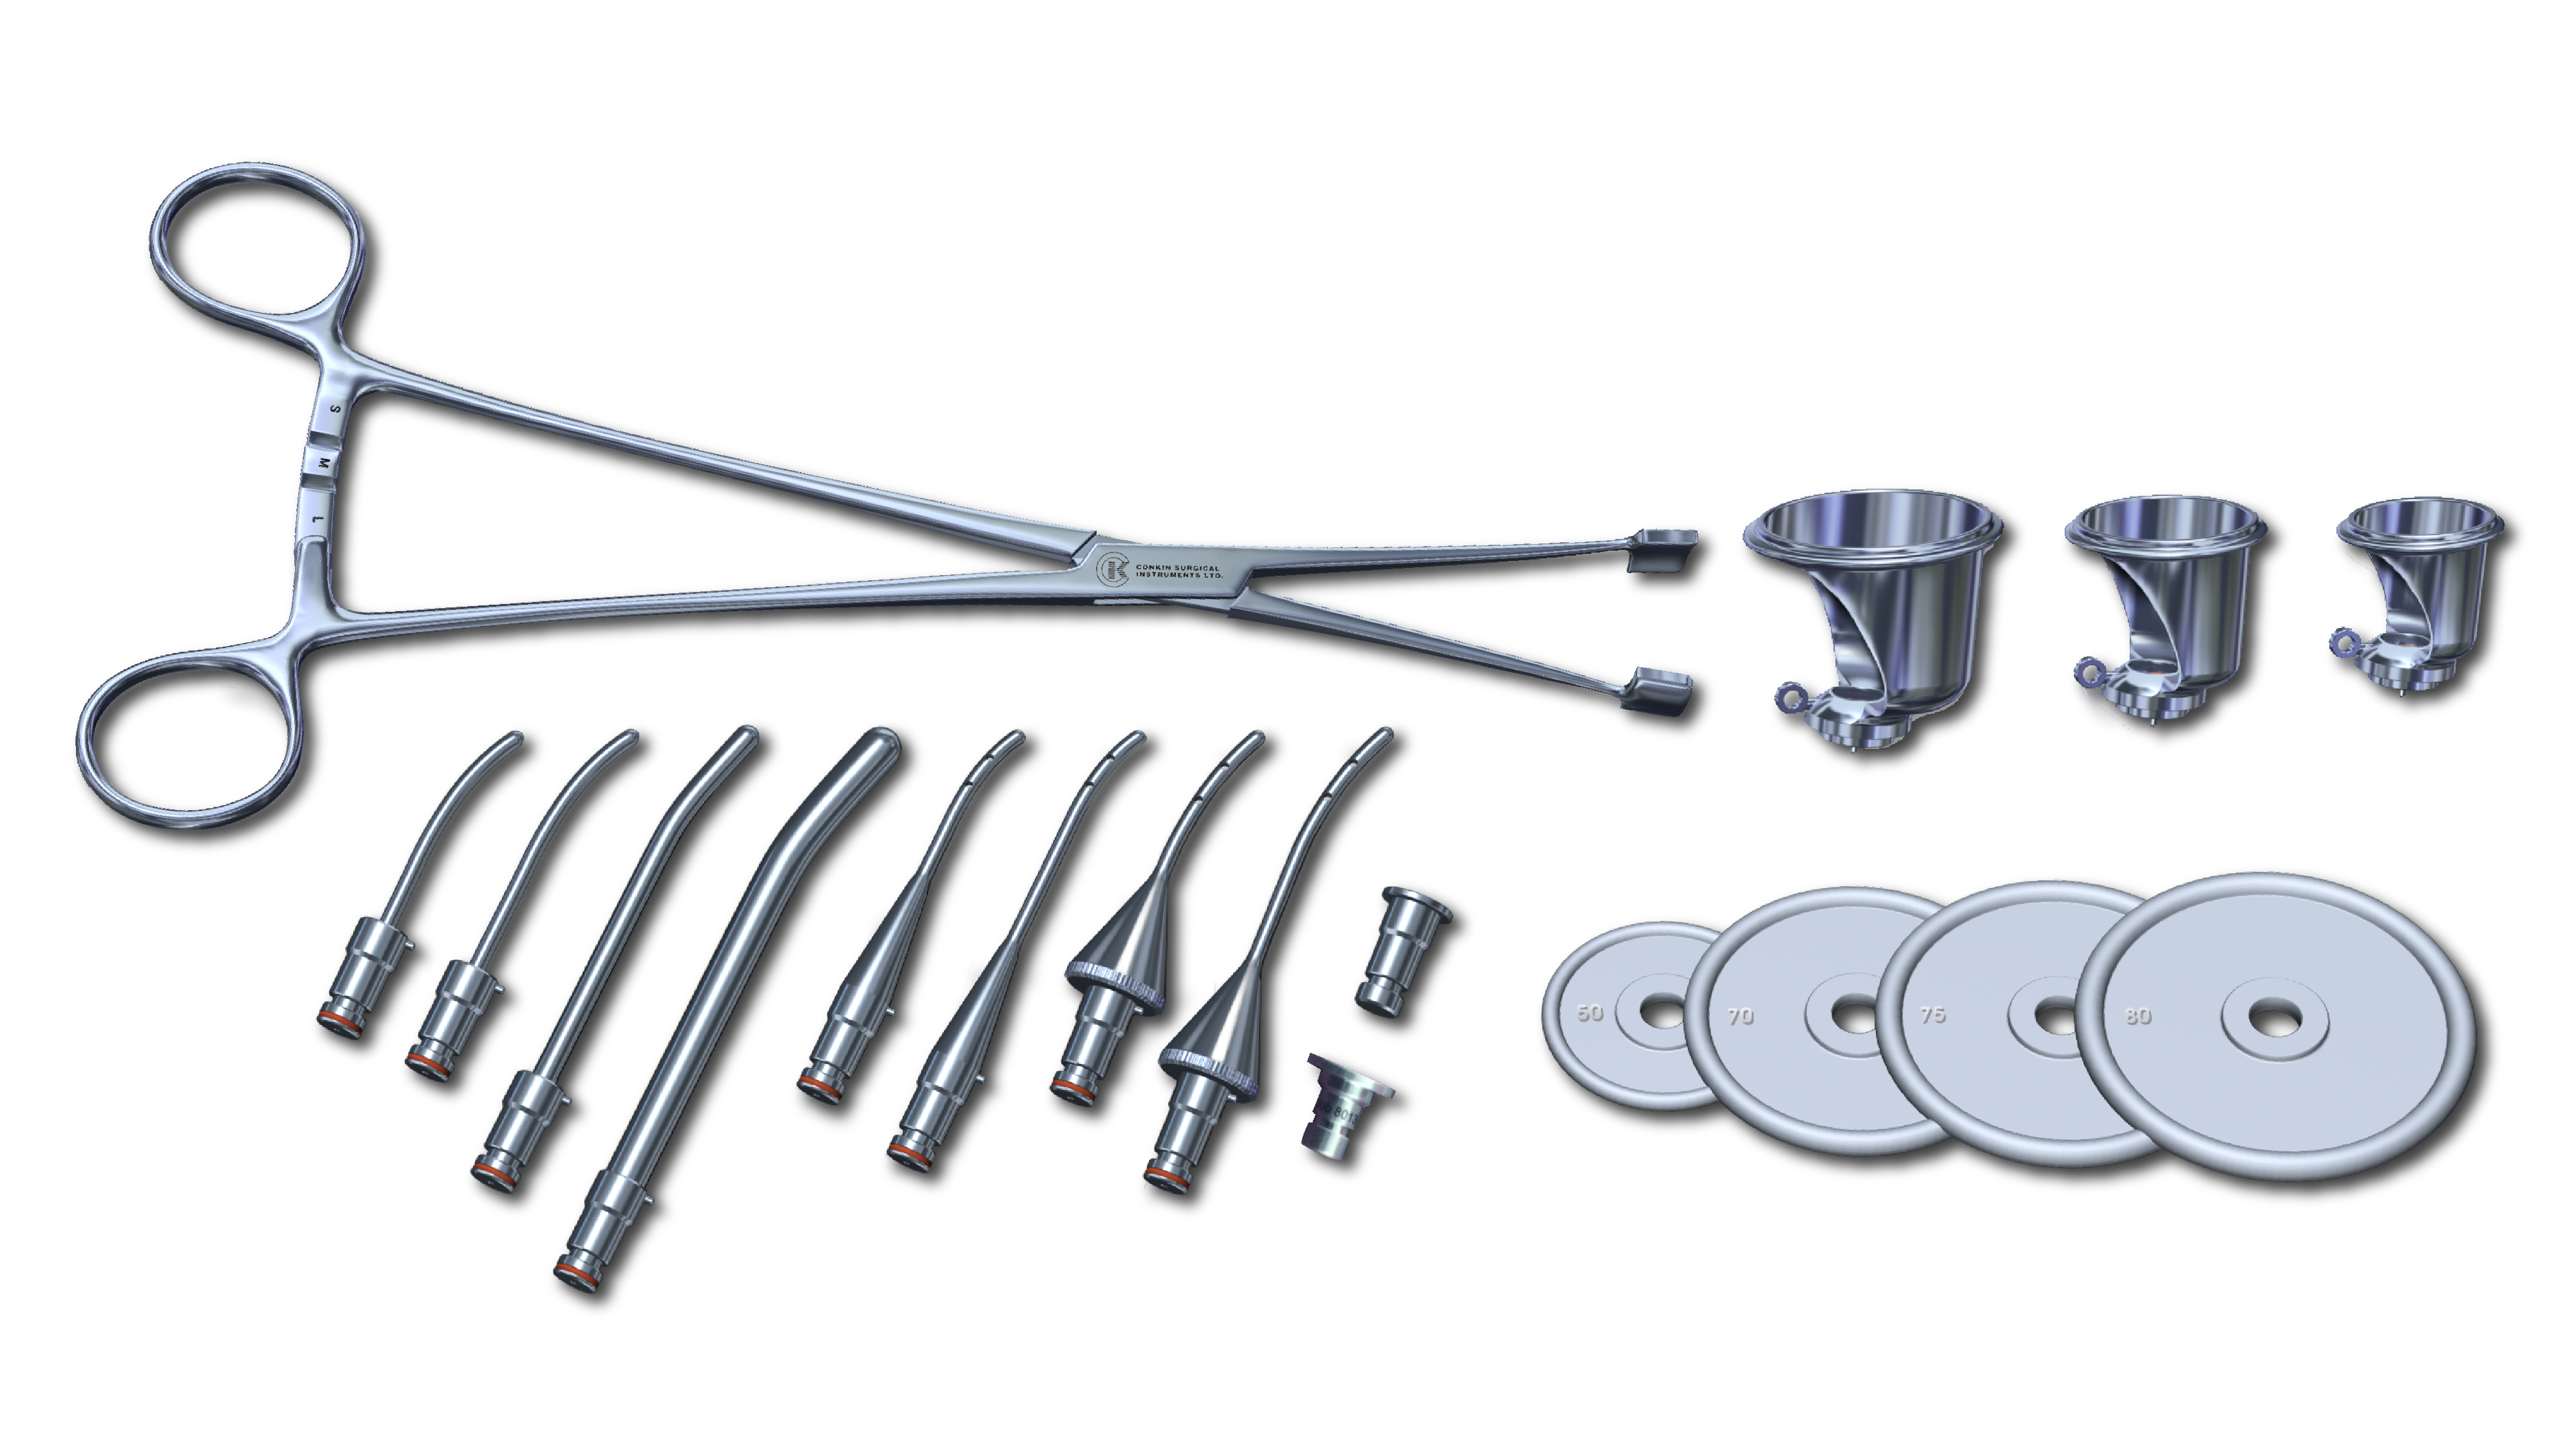 Valtchev Vaginal Delineator Gynecology Instrument